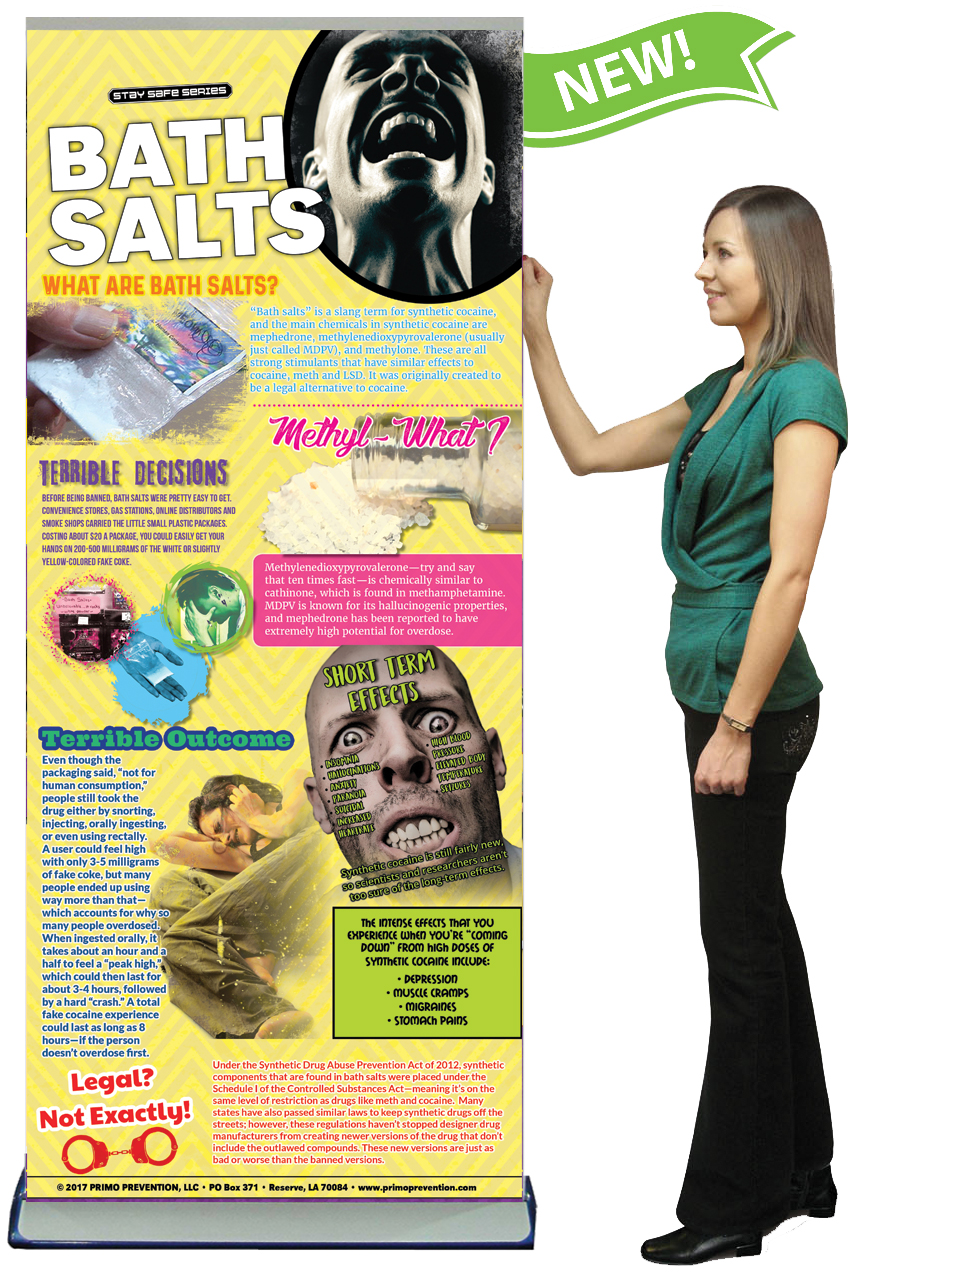 C E Bath Salts Prevention Retractable Banner W Stand Primo Prevention